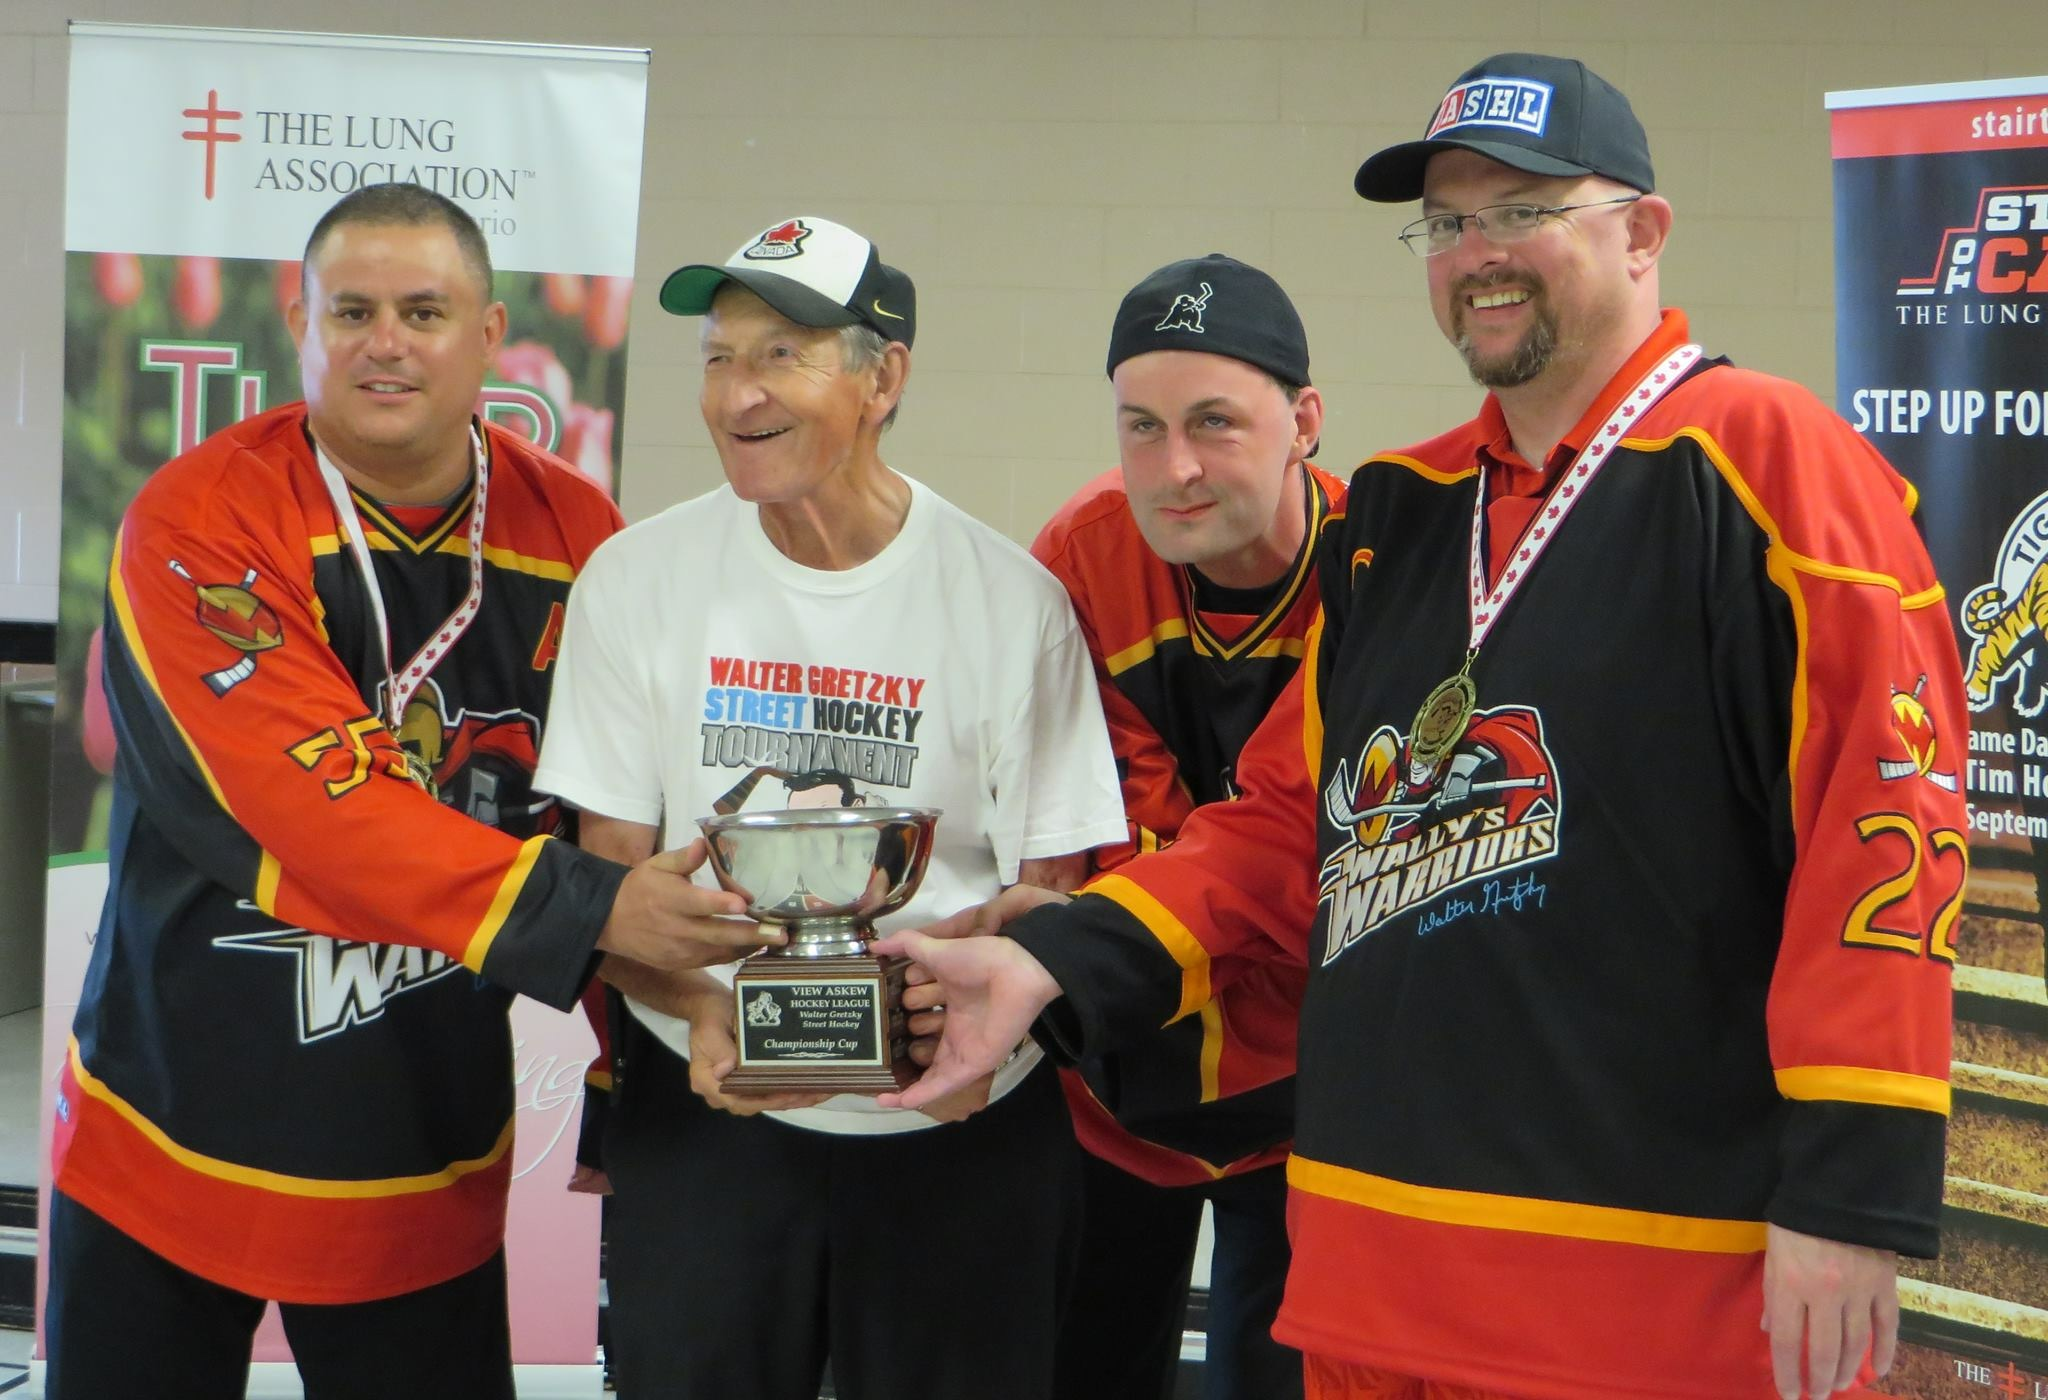 Wally with his Warriors in 2015